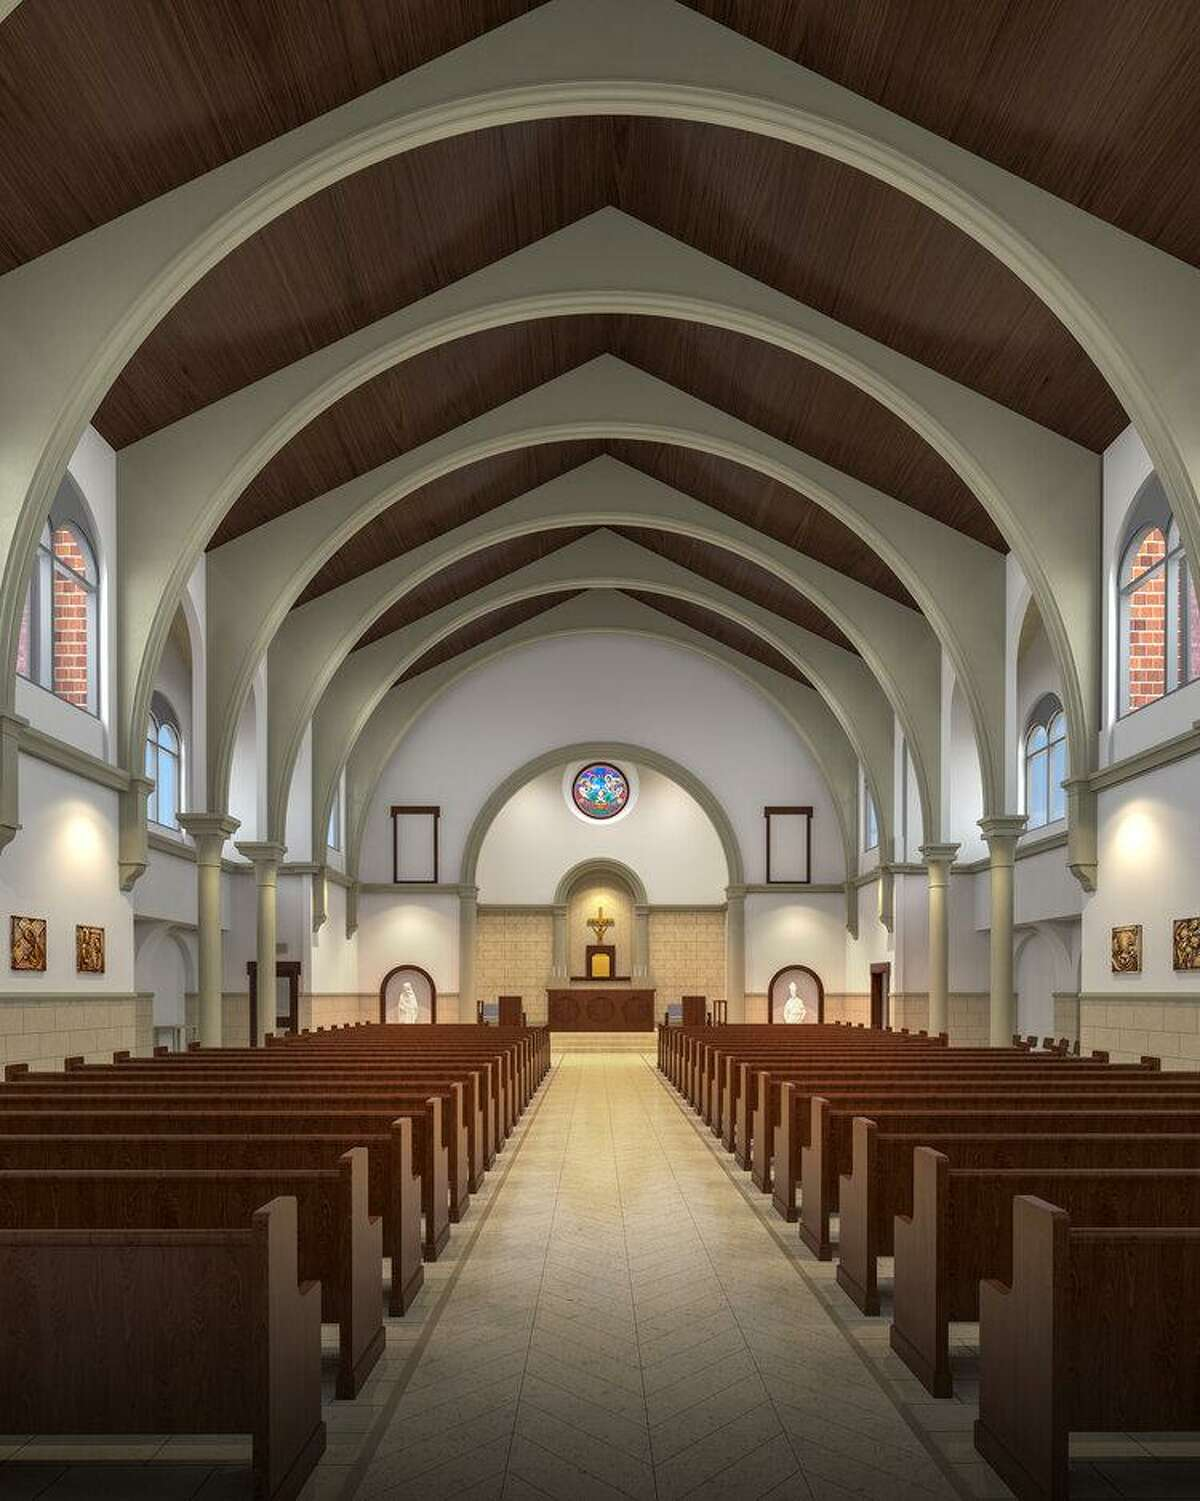 St. Anthony of Padua Catholic Church of The Woodlands plans to have its permitting for a new chapel finished by the end of next month. The new chapel, Our Lady of the Angels, is expected to break ground before the end of the year, and the church hopes to be celebrating its opening by Christmas of 2021.